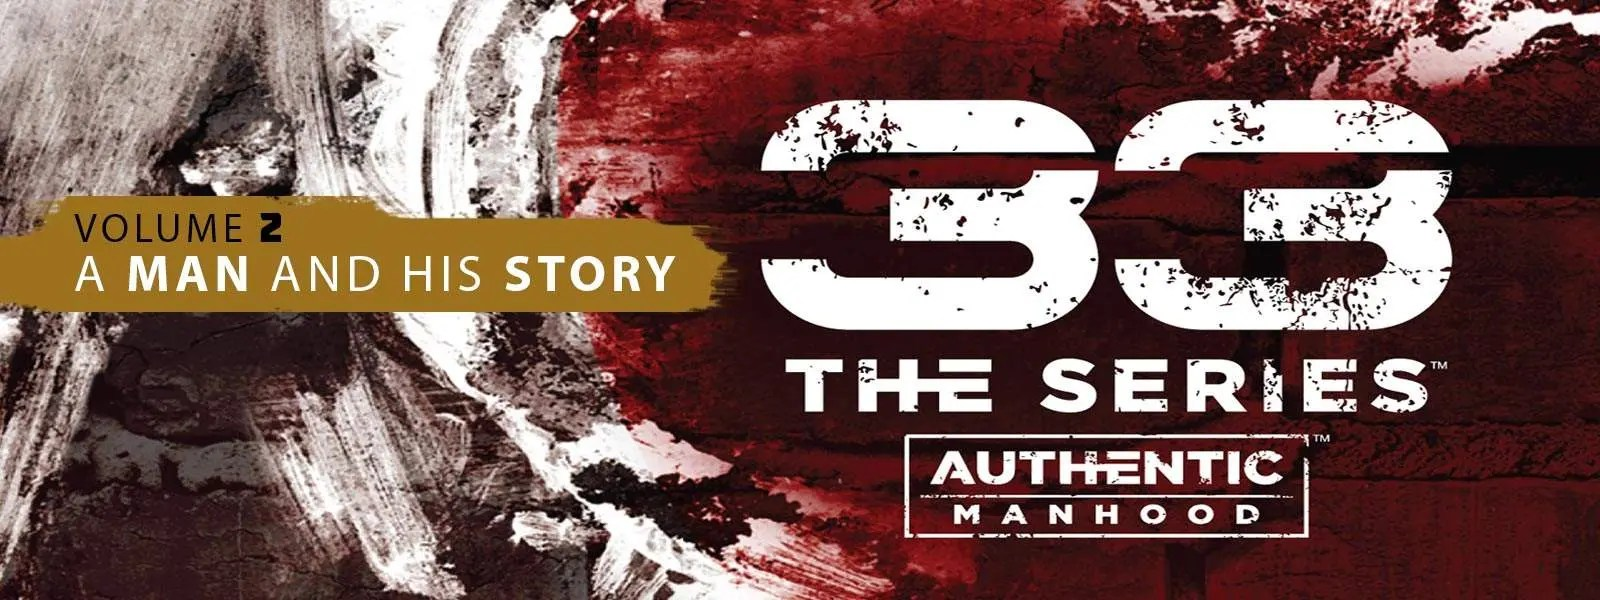 33 Series - Authentic Manhood - A Man and Hist Story